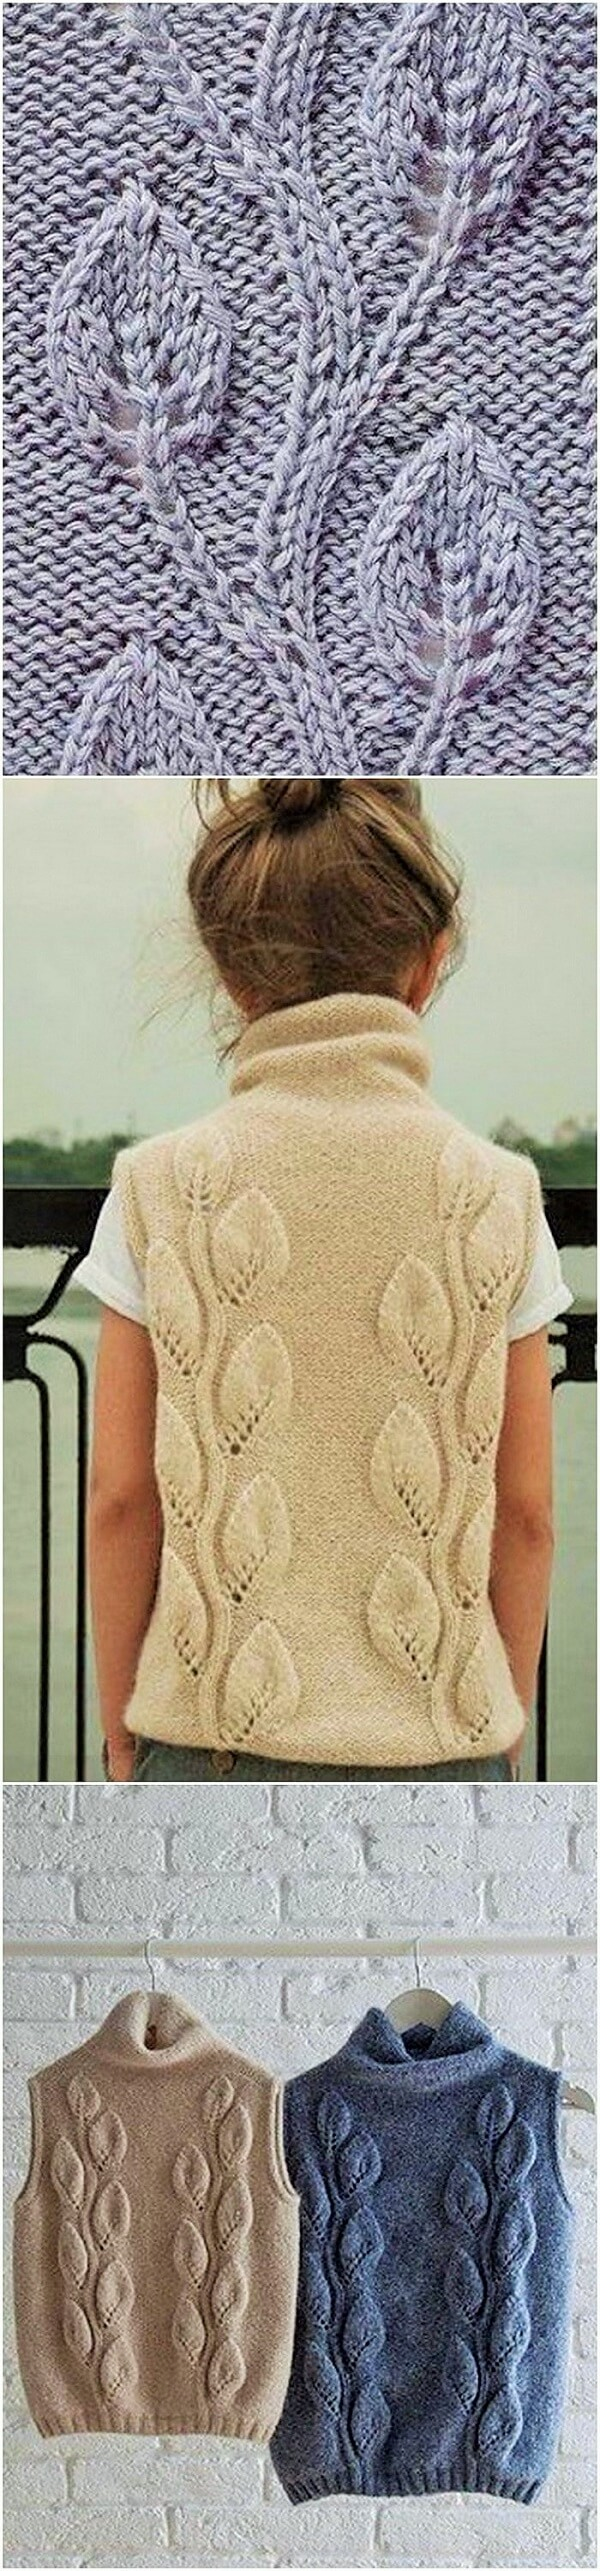 homemade with crochet Ladies Fashion Ideas -3